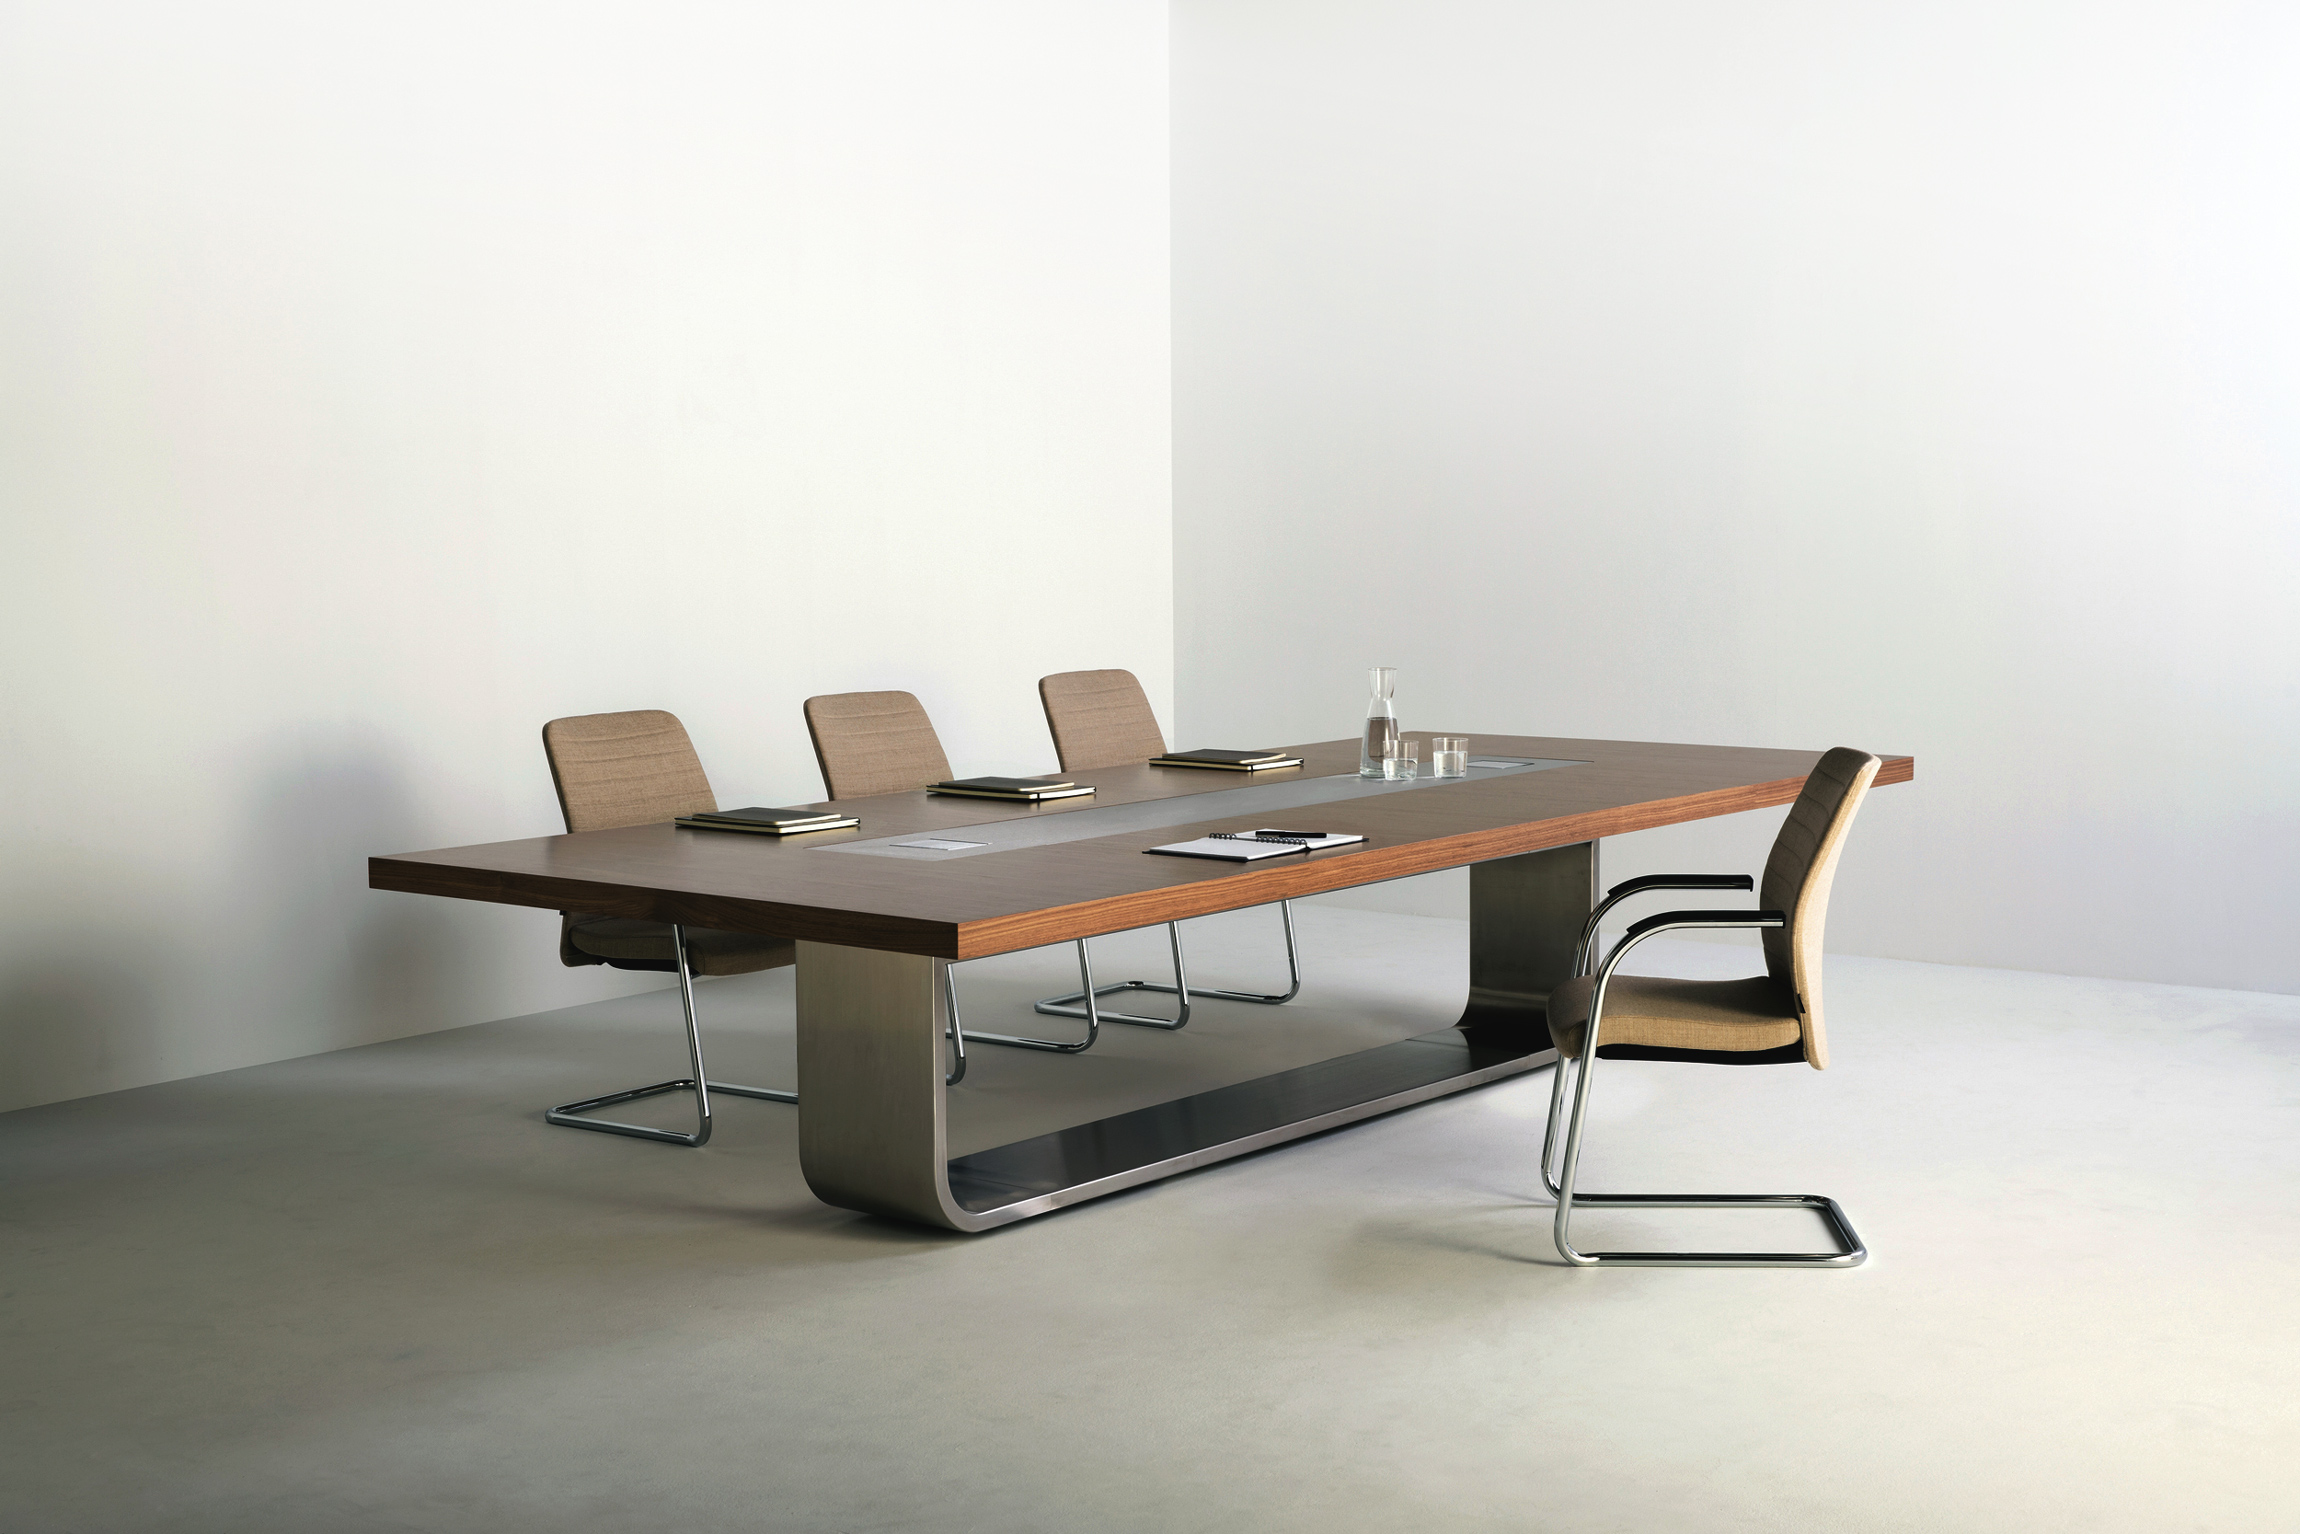 Popular Conference Room Table Conference Room Table Ambience Dor Conference Room Tables Wood Conference Table houzz-02 Modern Conference Table